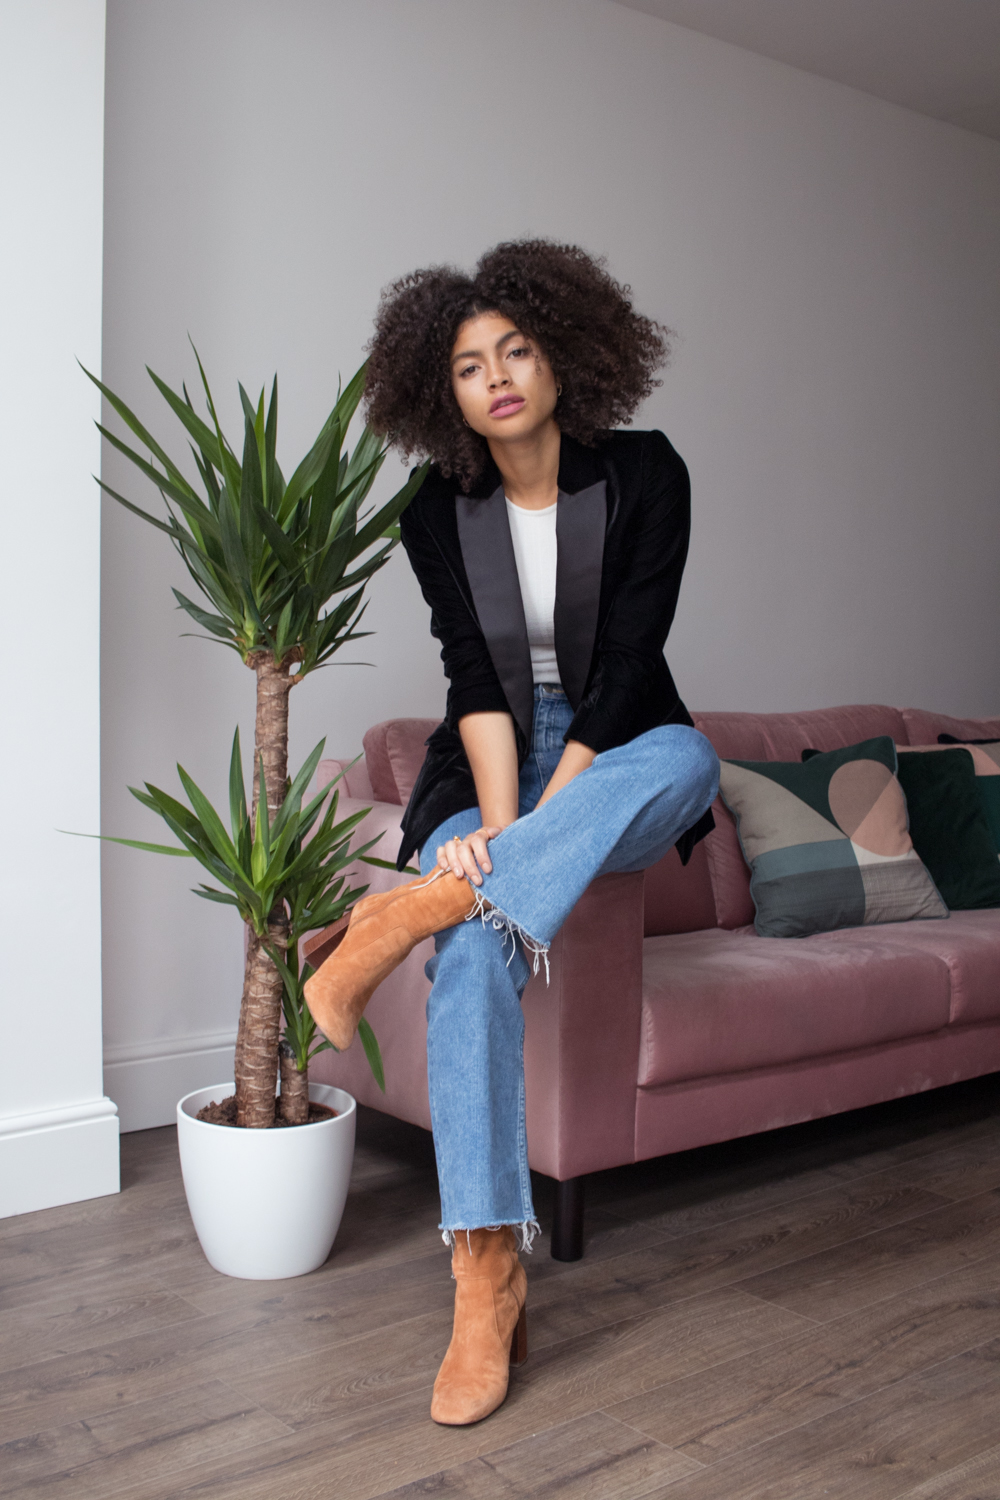 Topshop LFW Black Velvet Tuxedo Blazer and Cropped Denim Flare and Other Stories Jeans Outfit